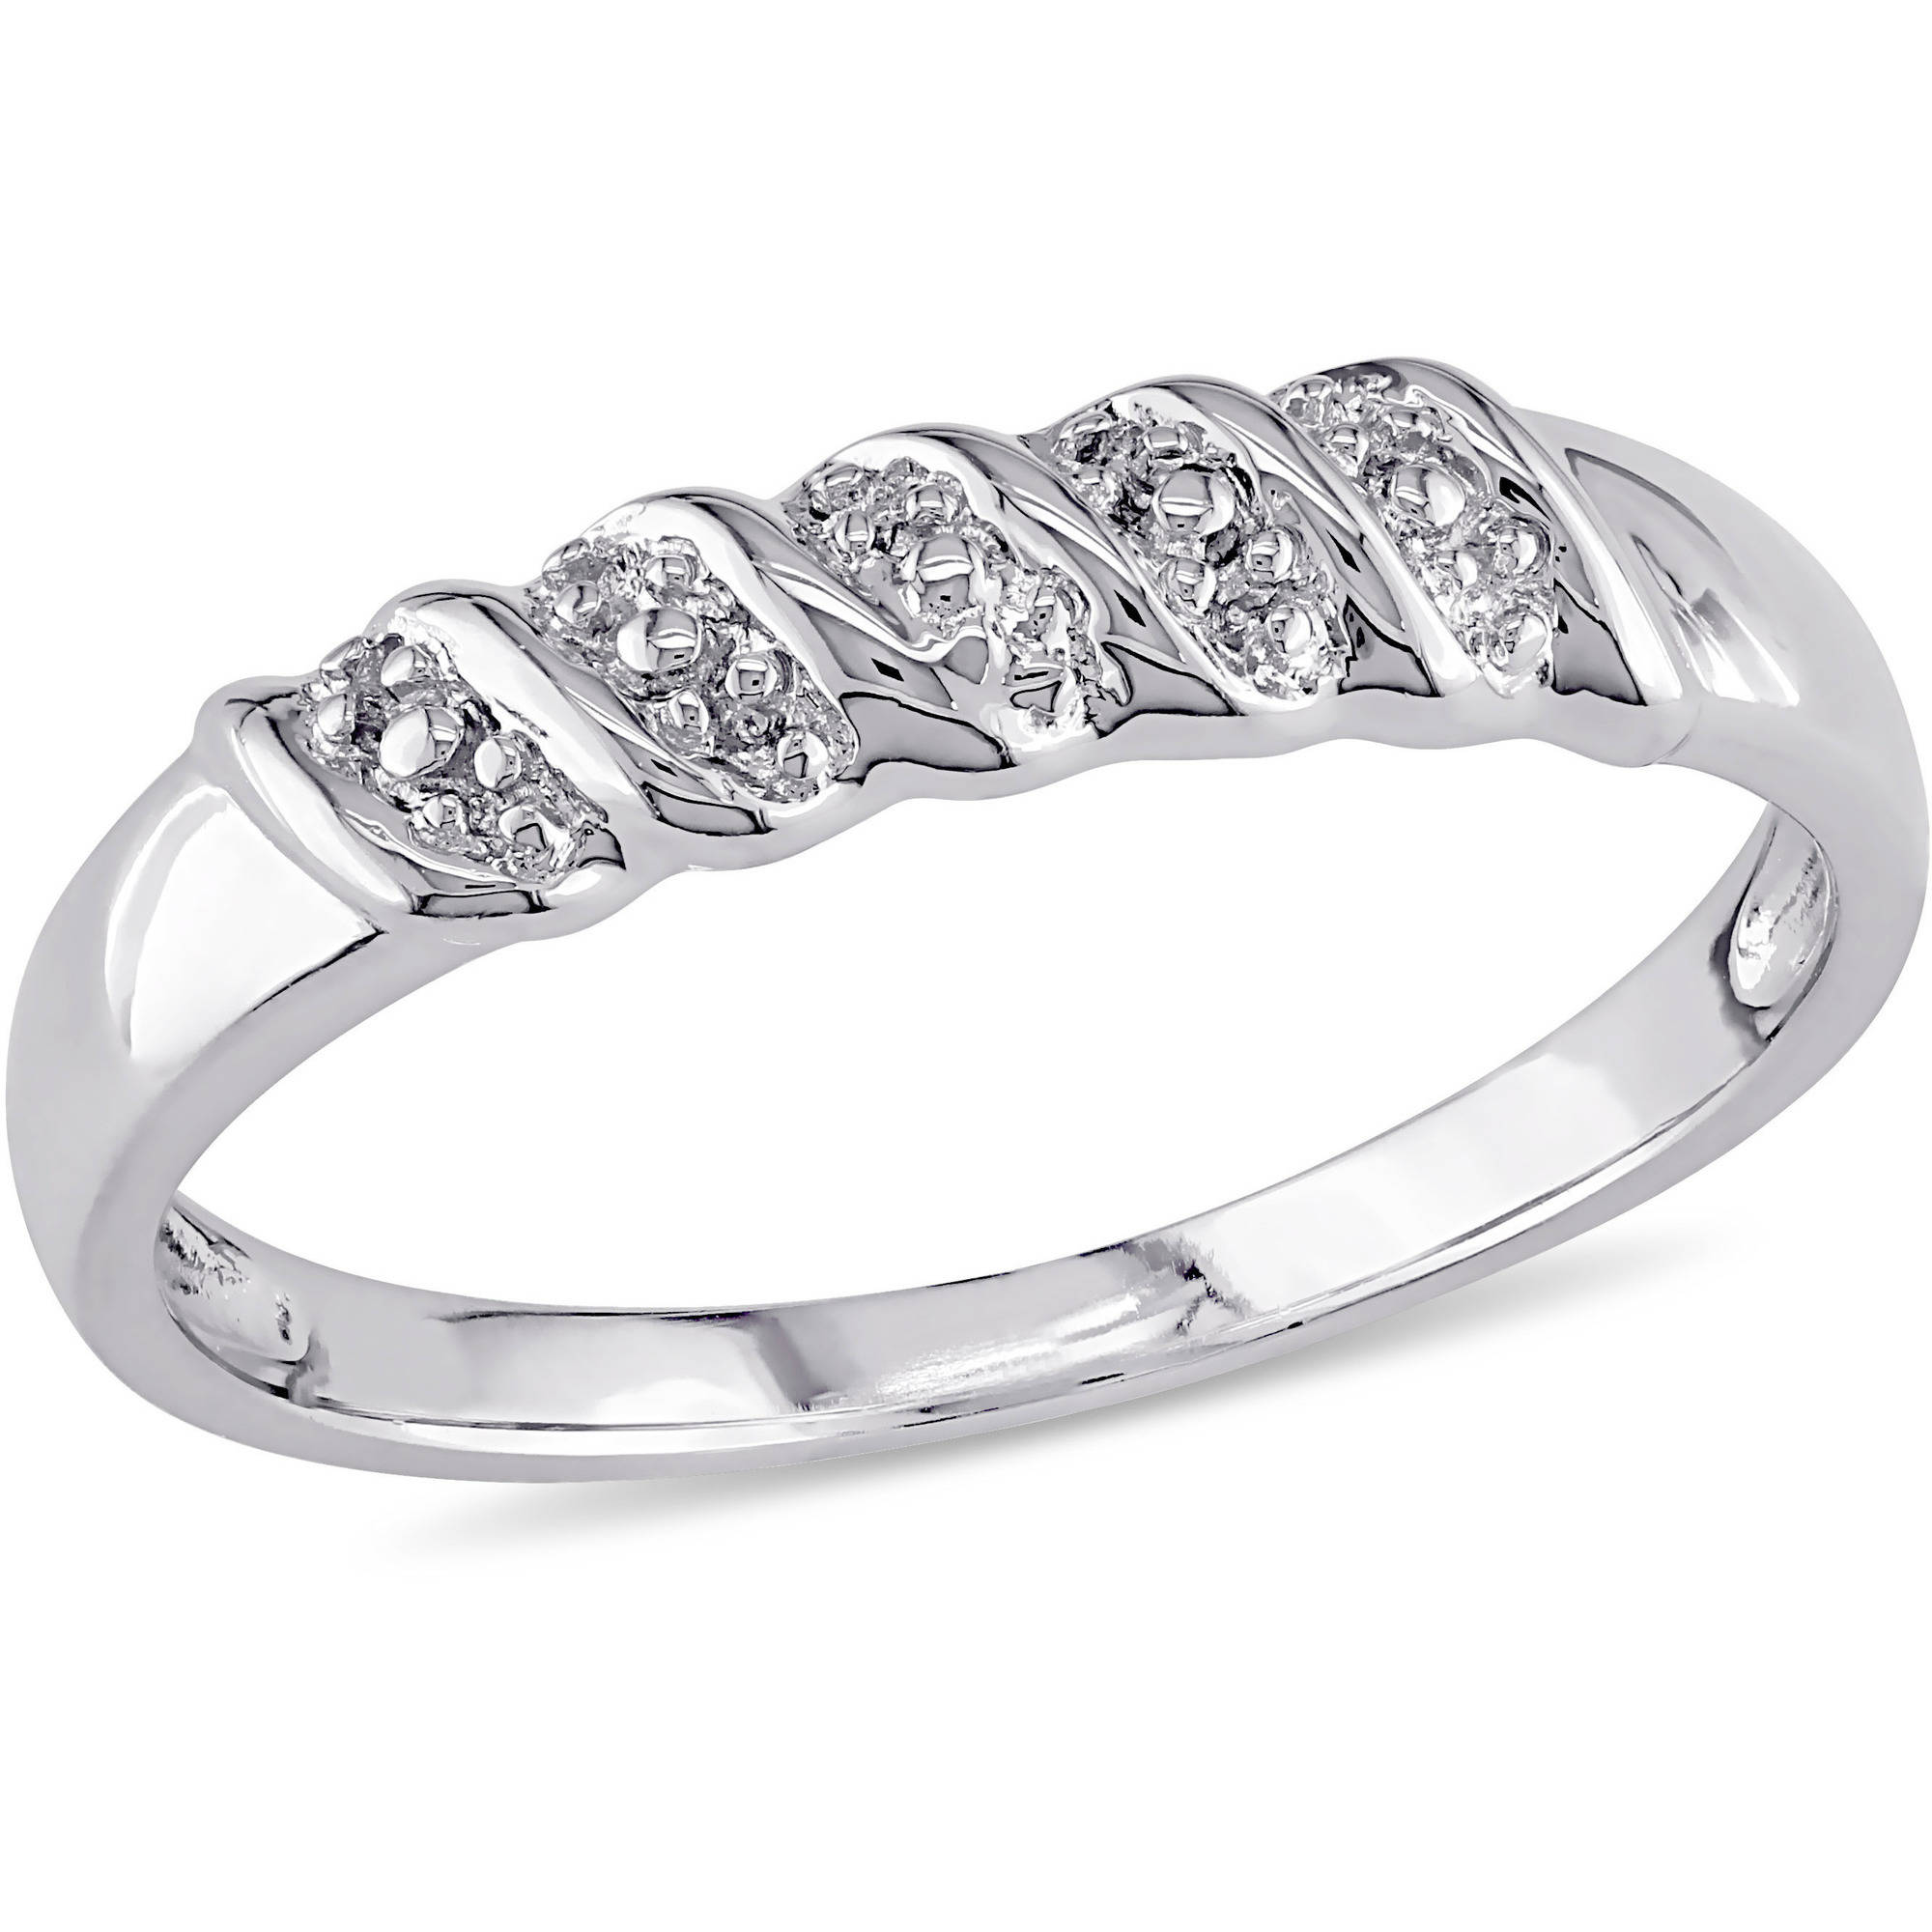 Miabella Sterling Silver Braided Design Wedding Band